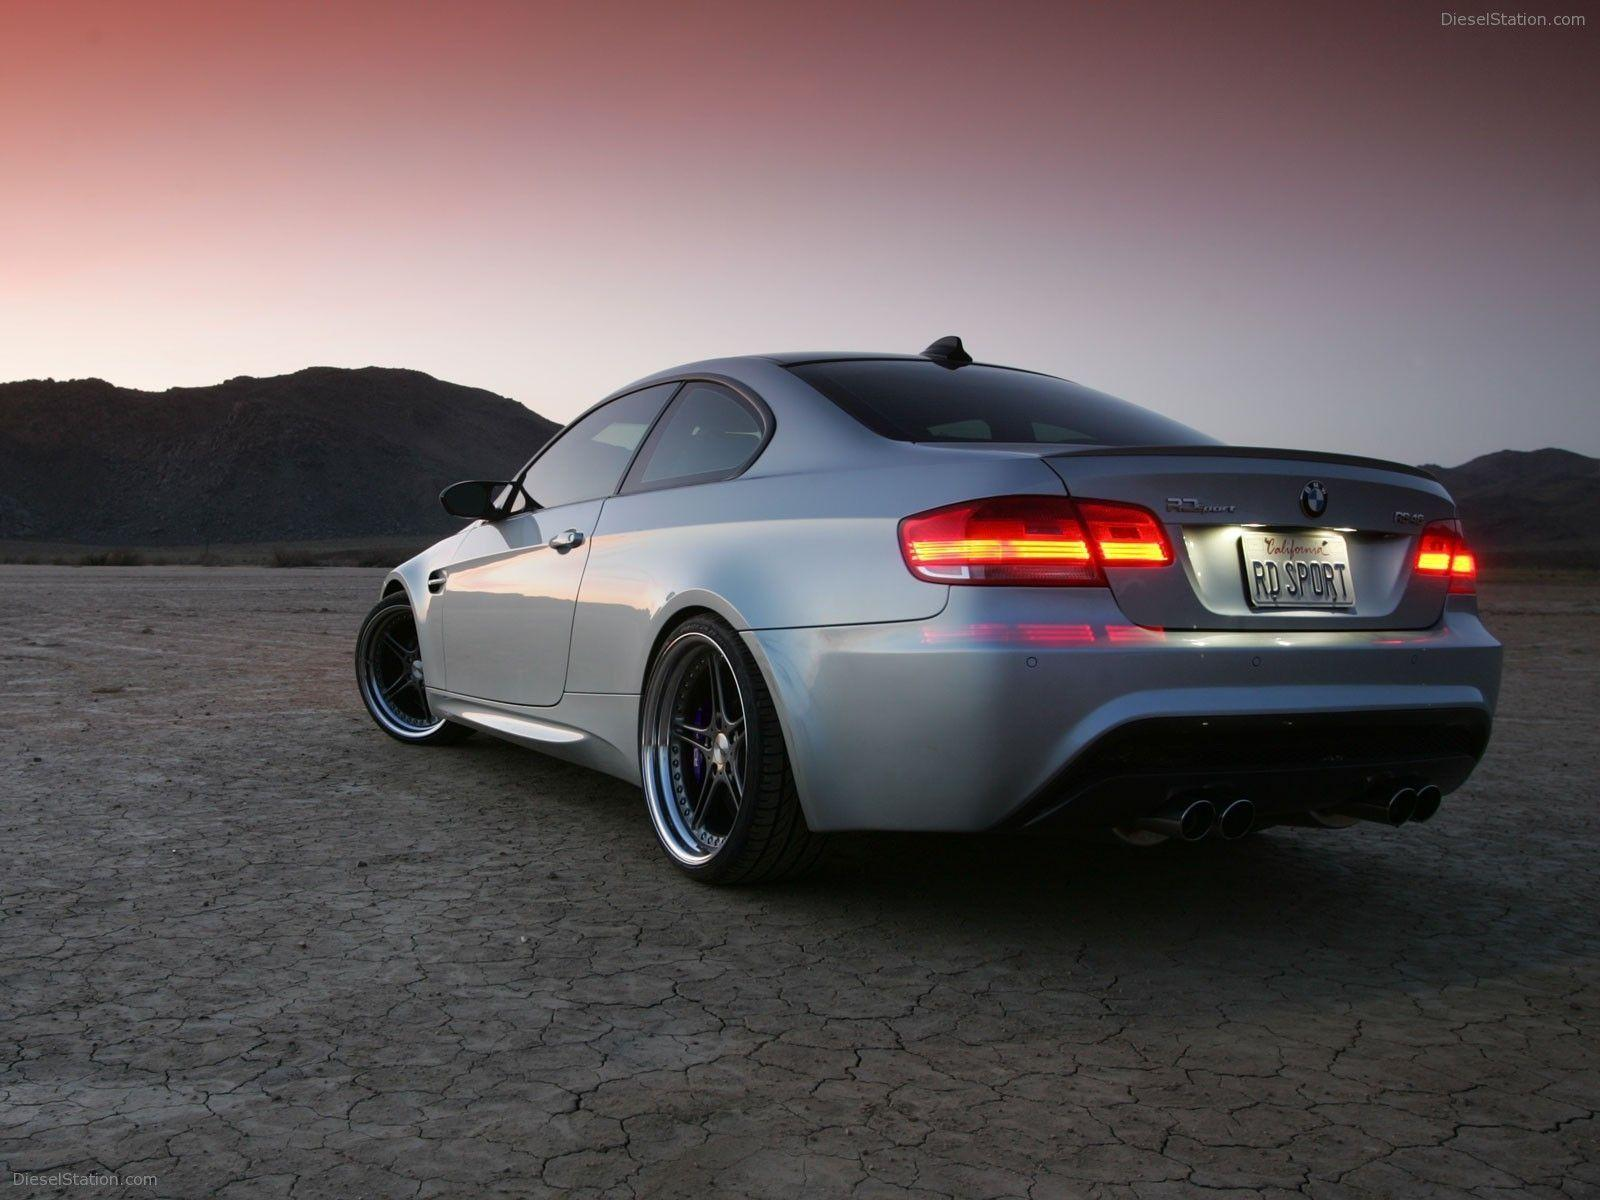 BMW M3 WALLPAPER 84 136015 Image HD Wallpapers